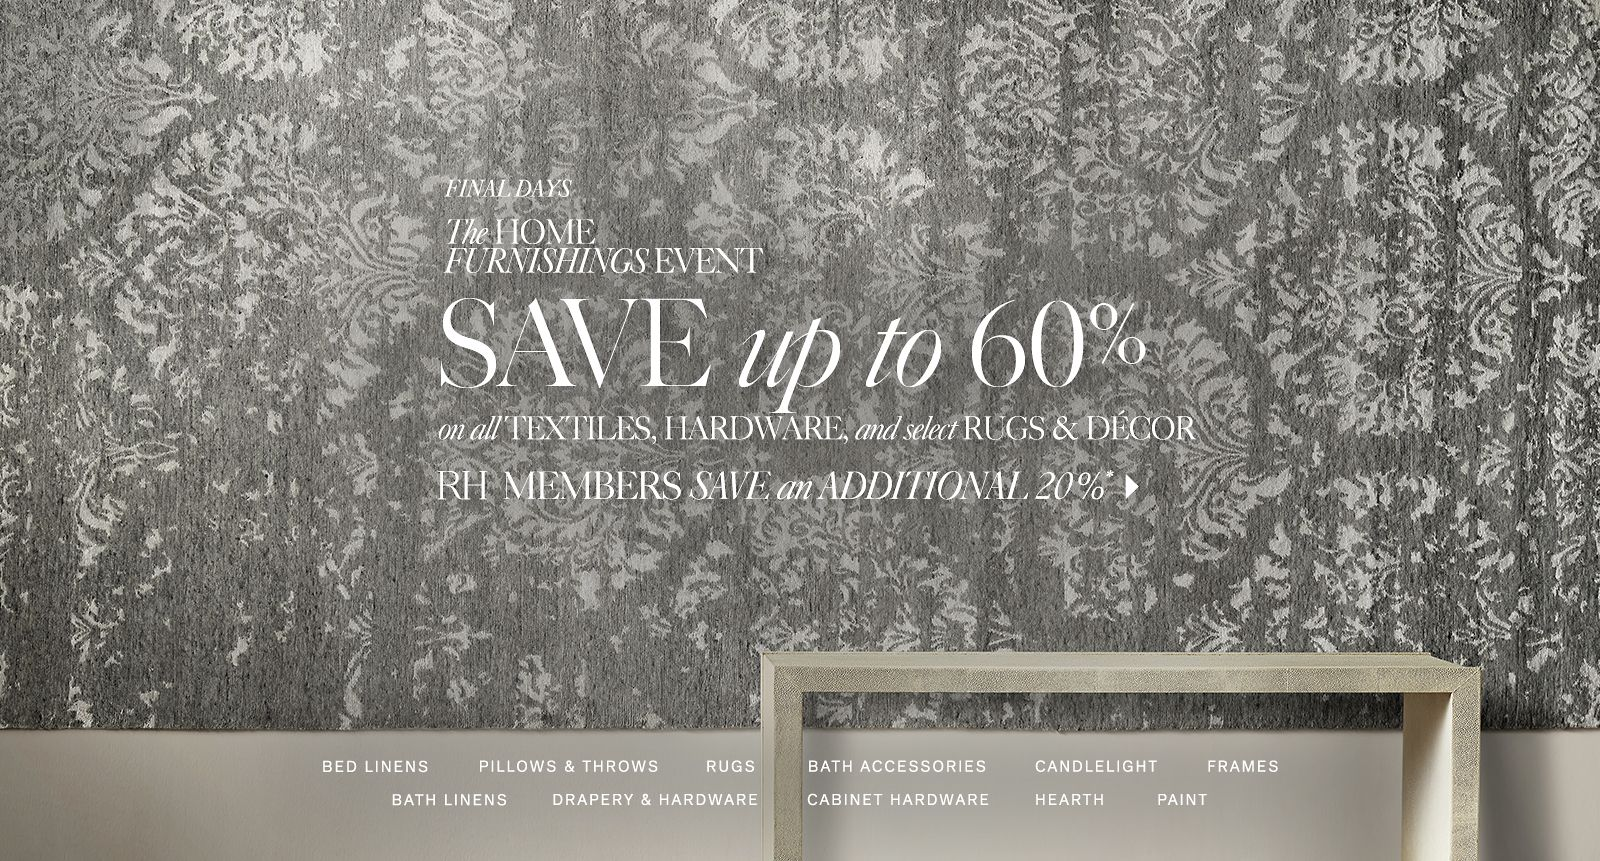 The Home Furnishings Event - Save up to 60%